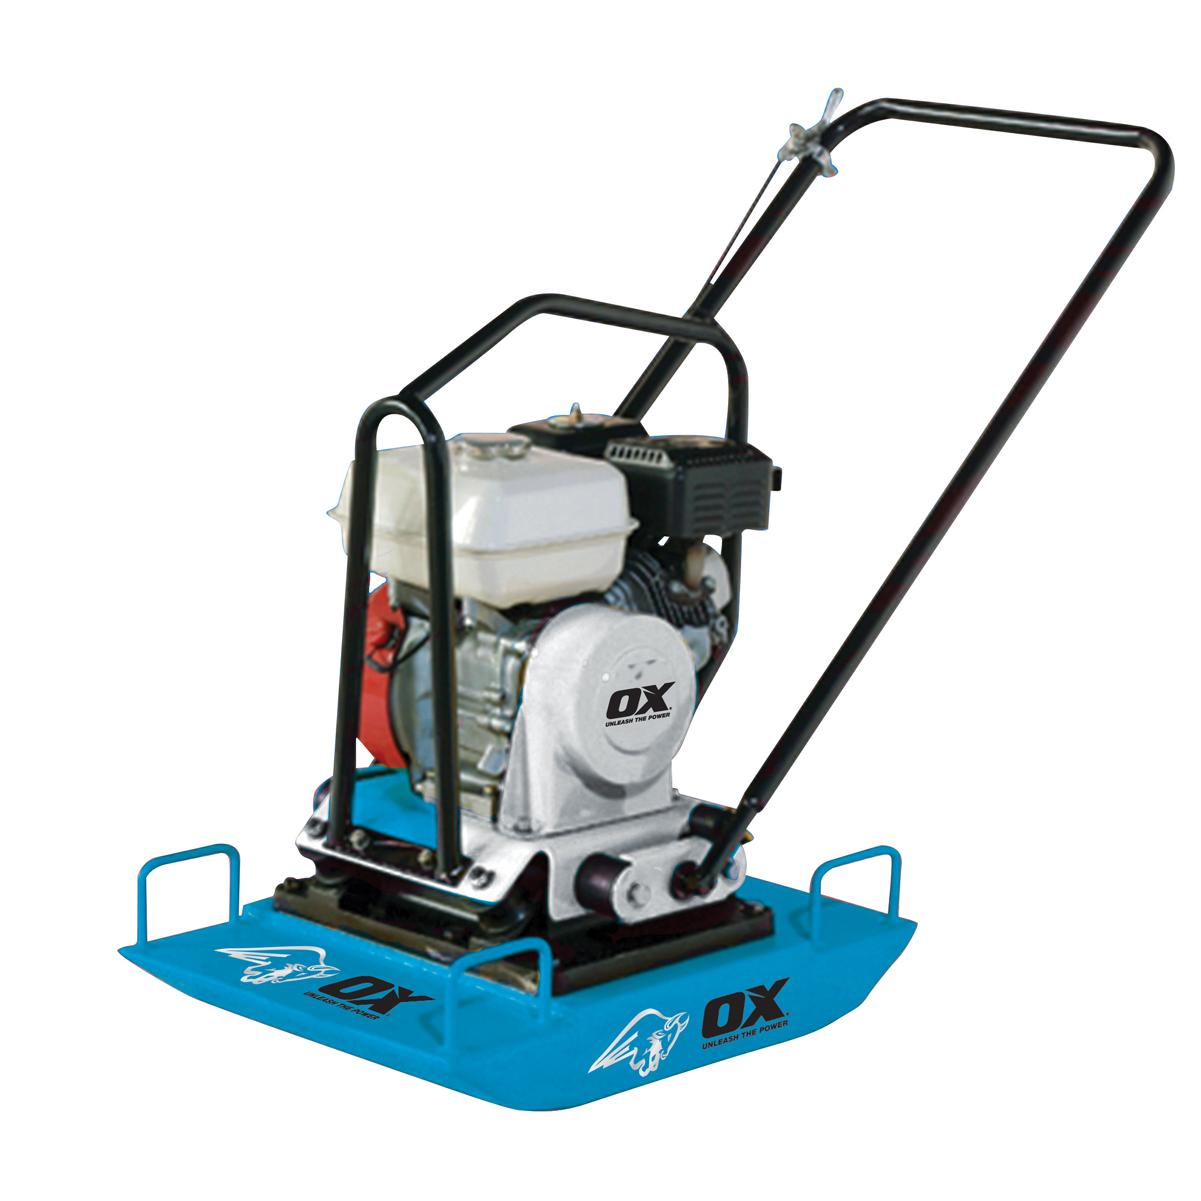 OX Prof Plate Compactor power plate